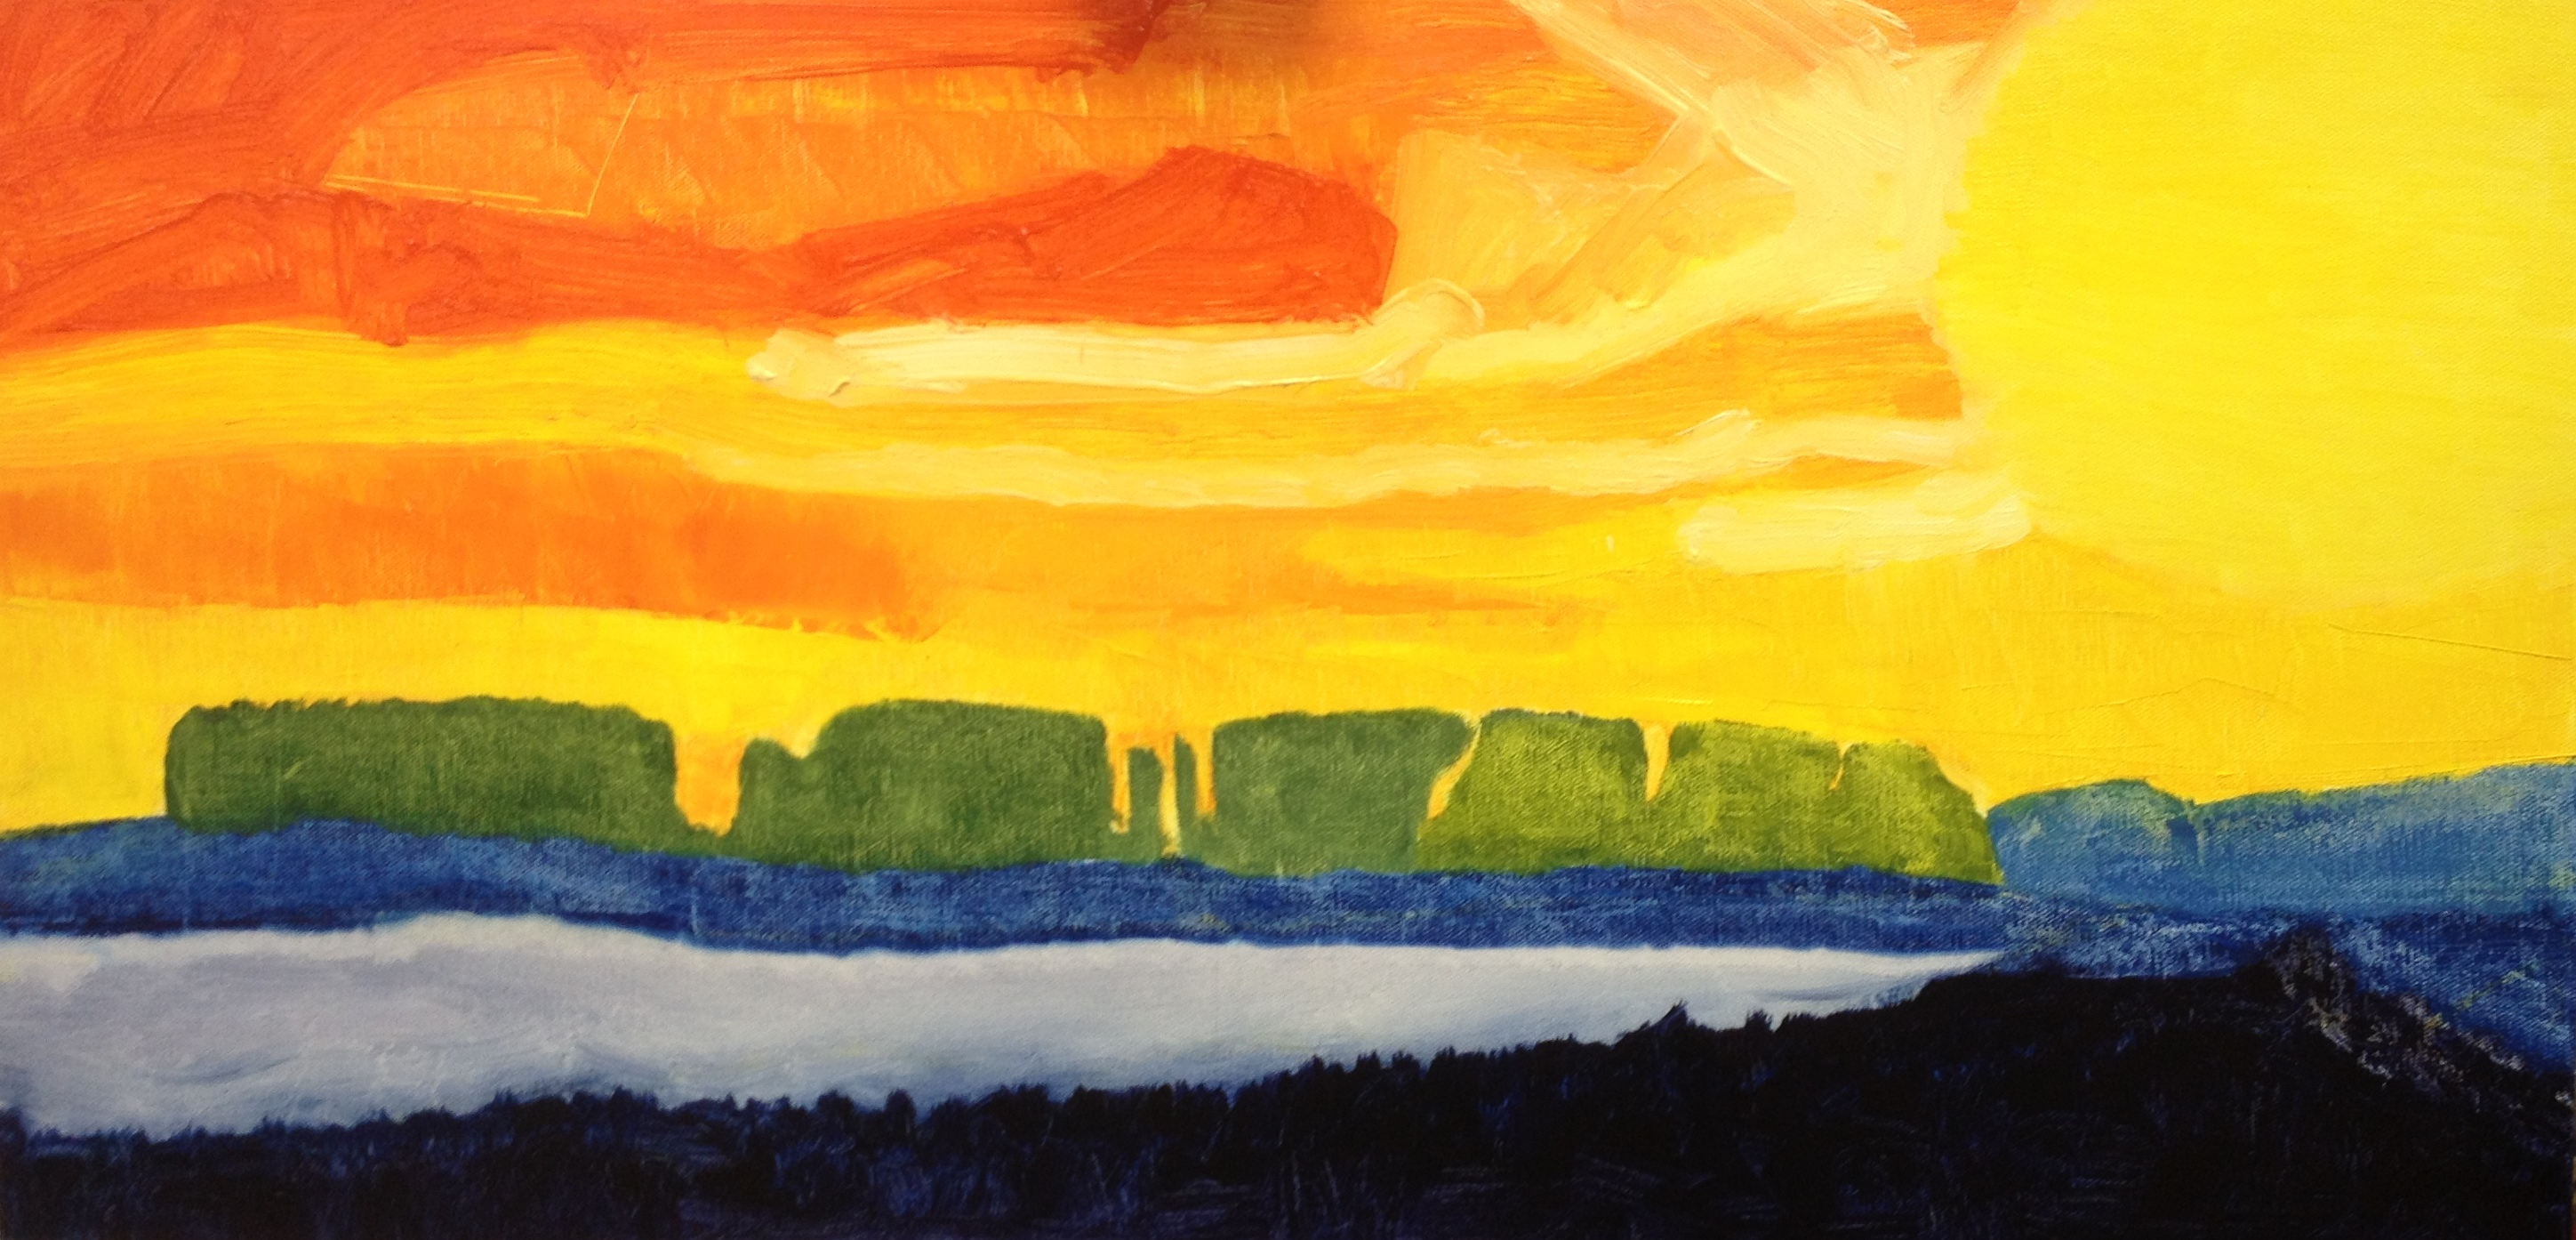 Sunset at Minsmere (2016) oil on canvas, 40cm x 80cm